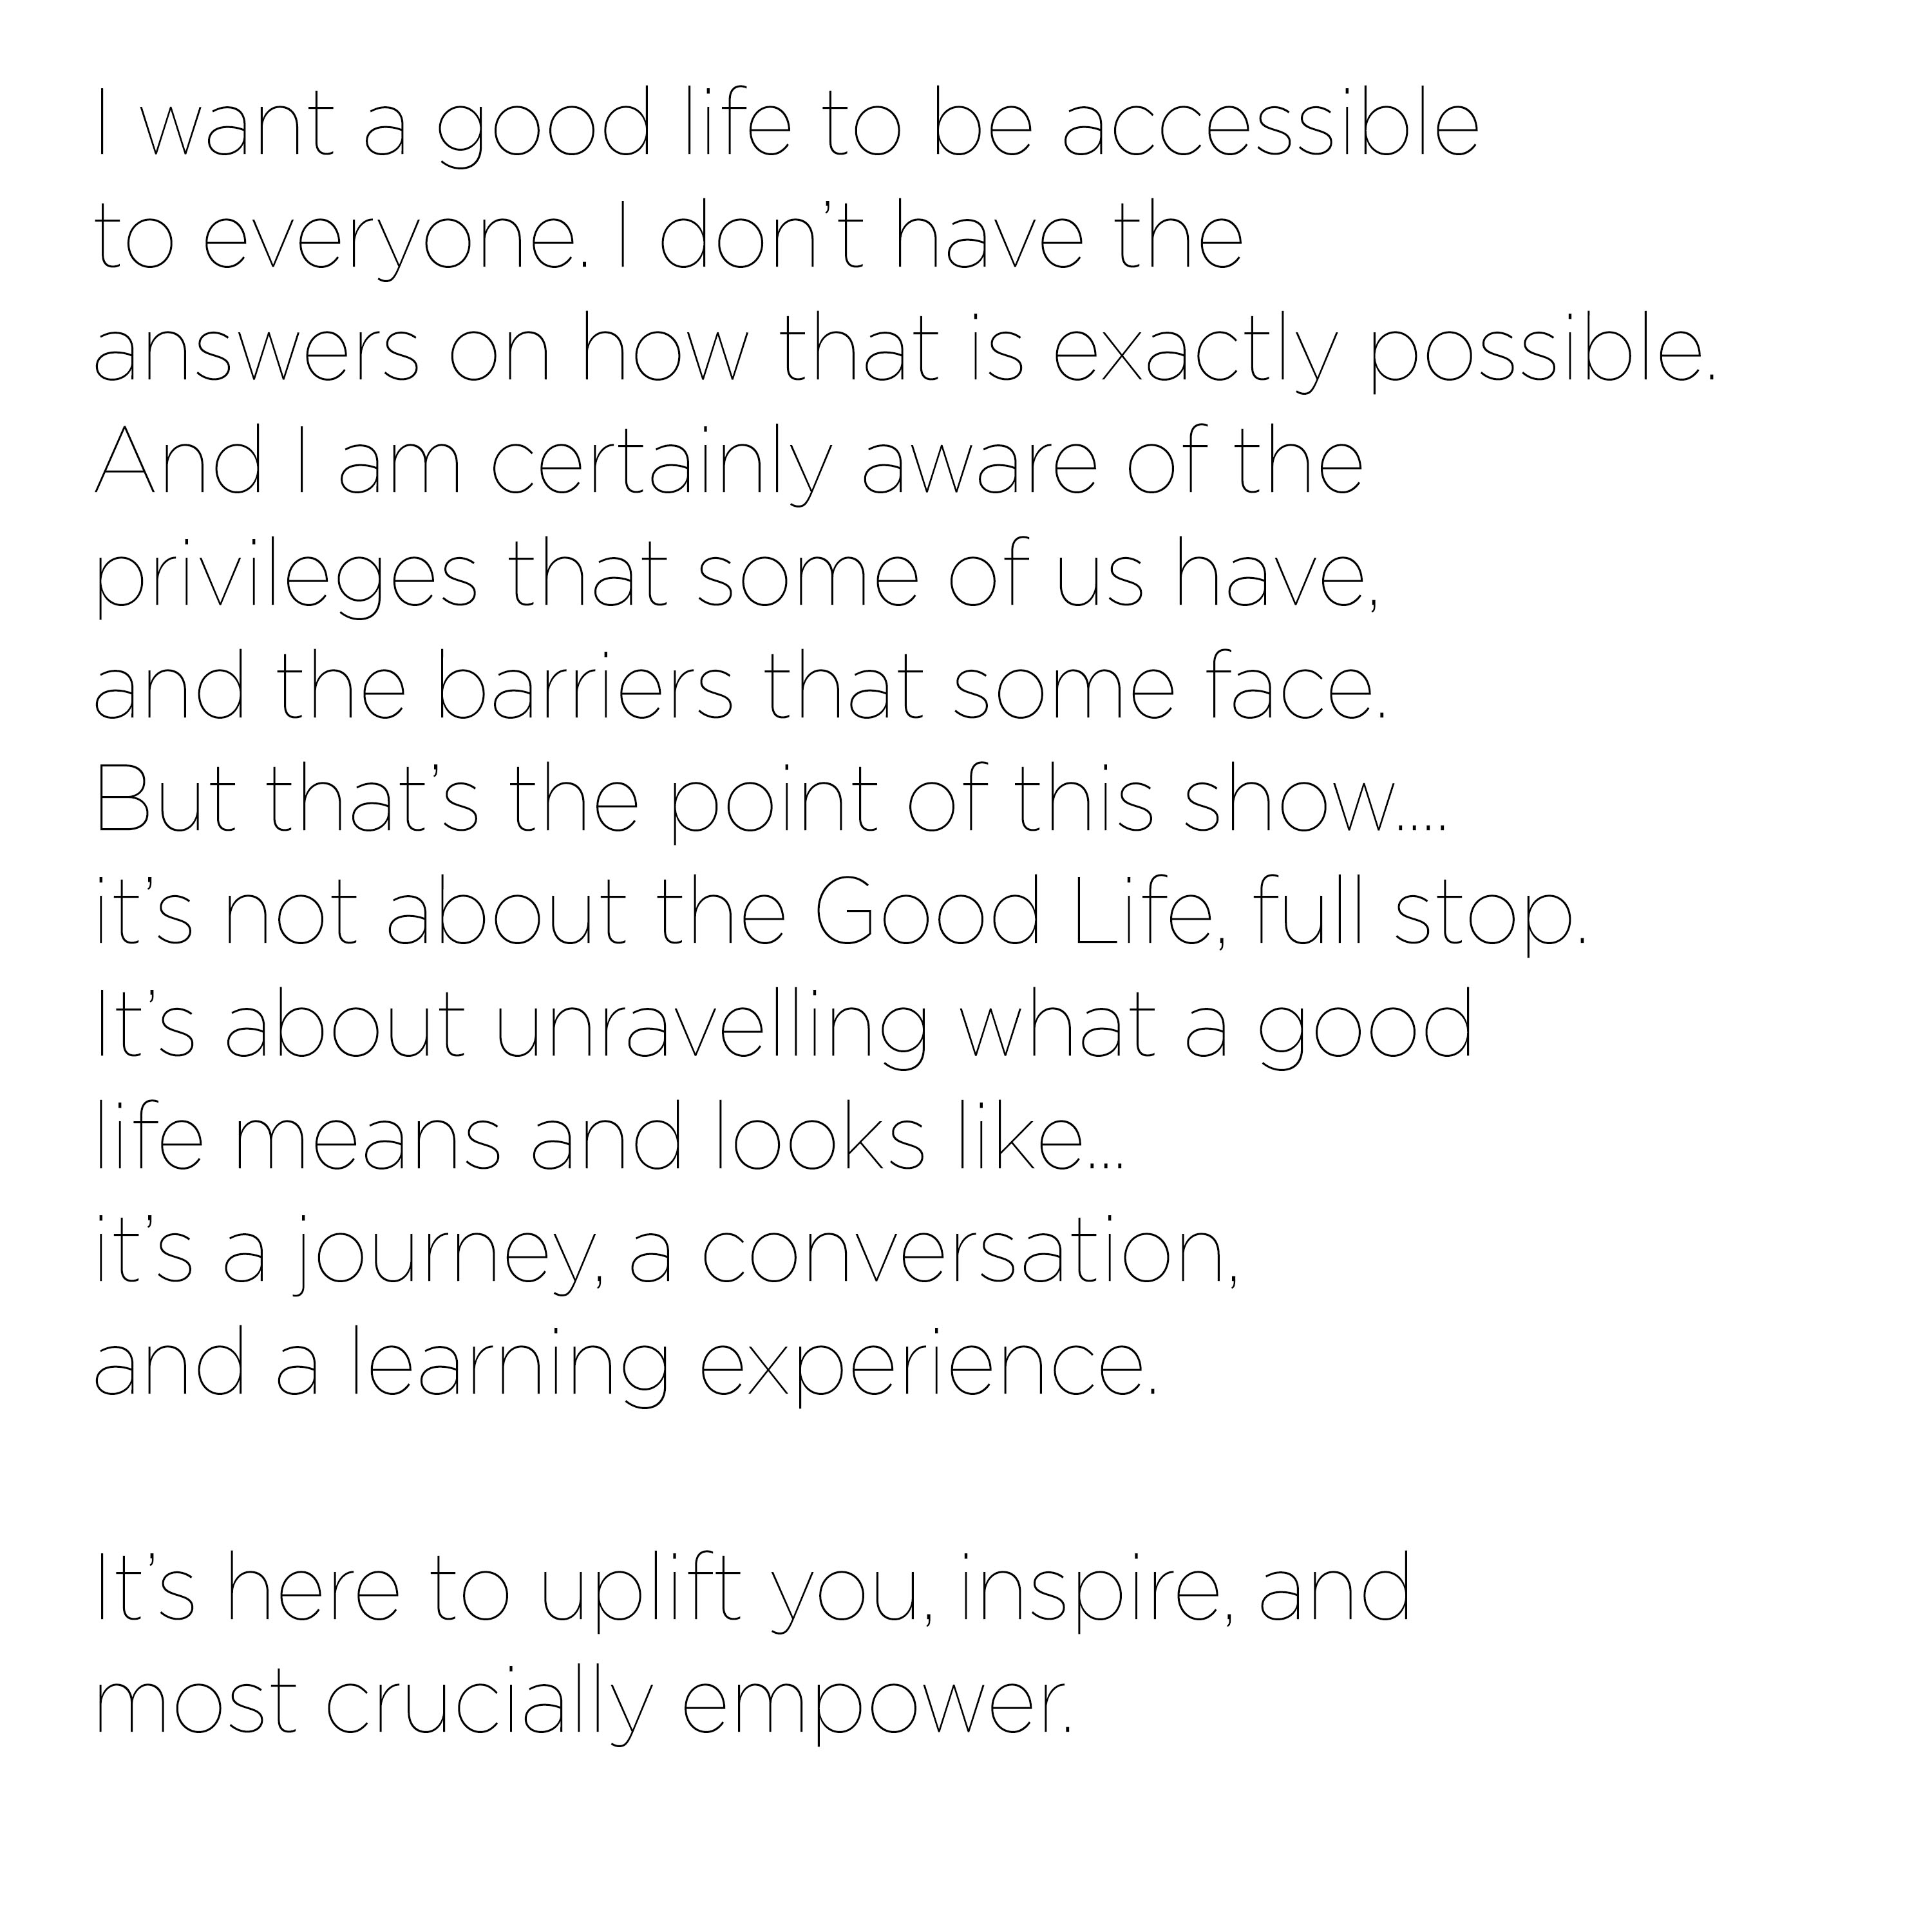 Good Life Unravelled Podcast meaning